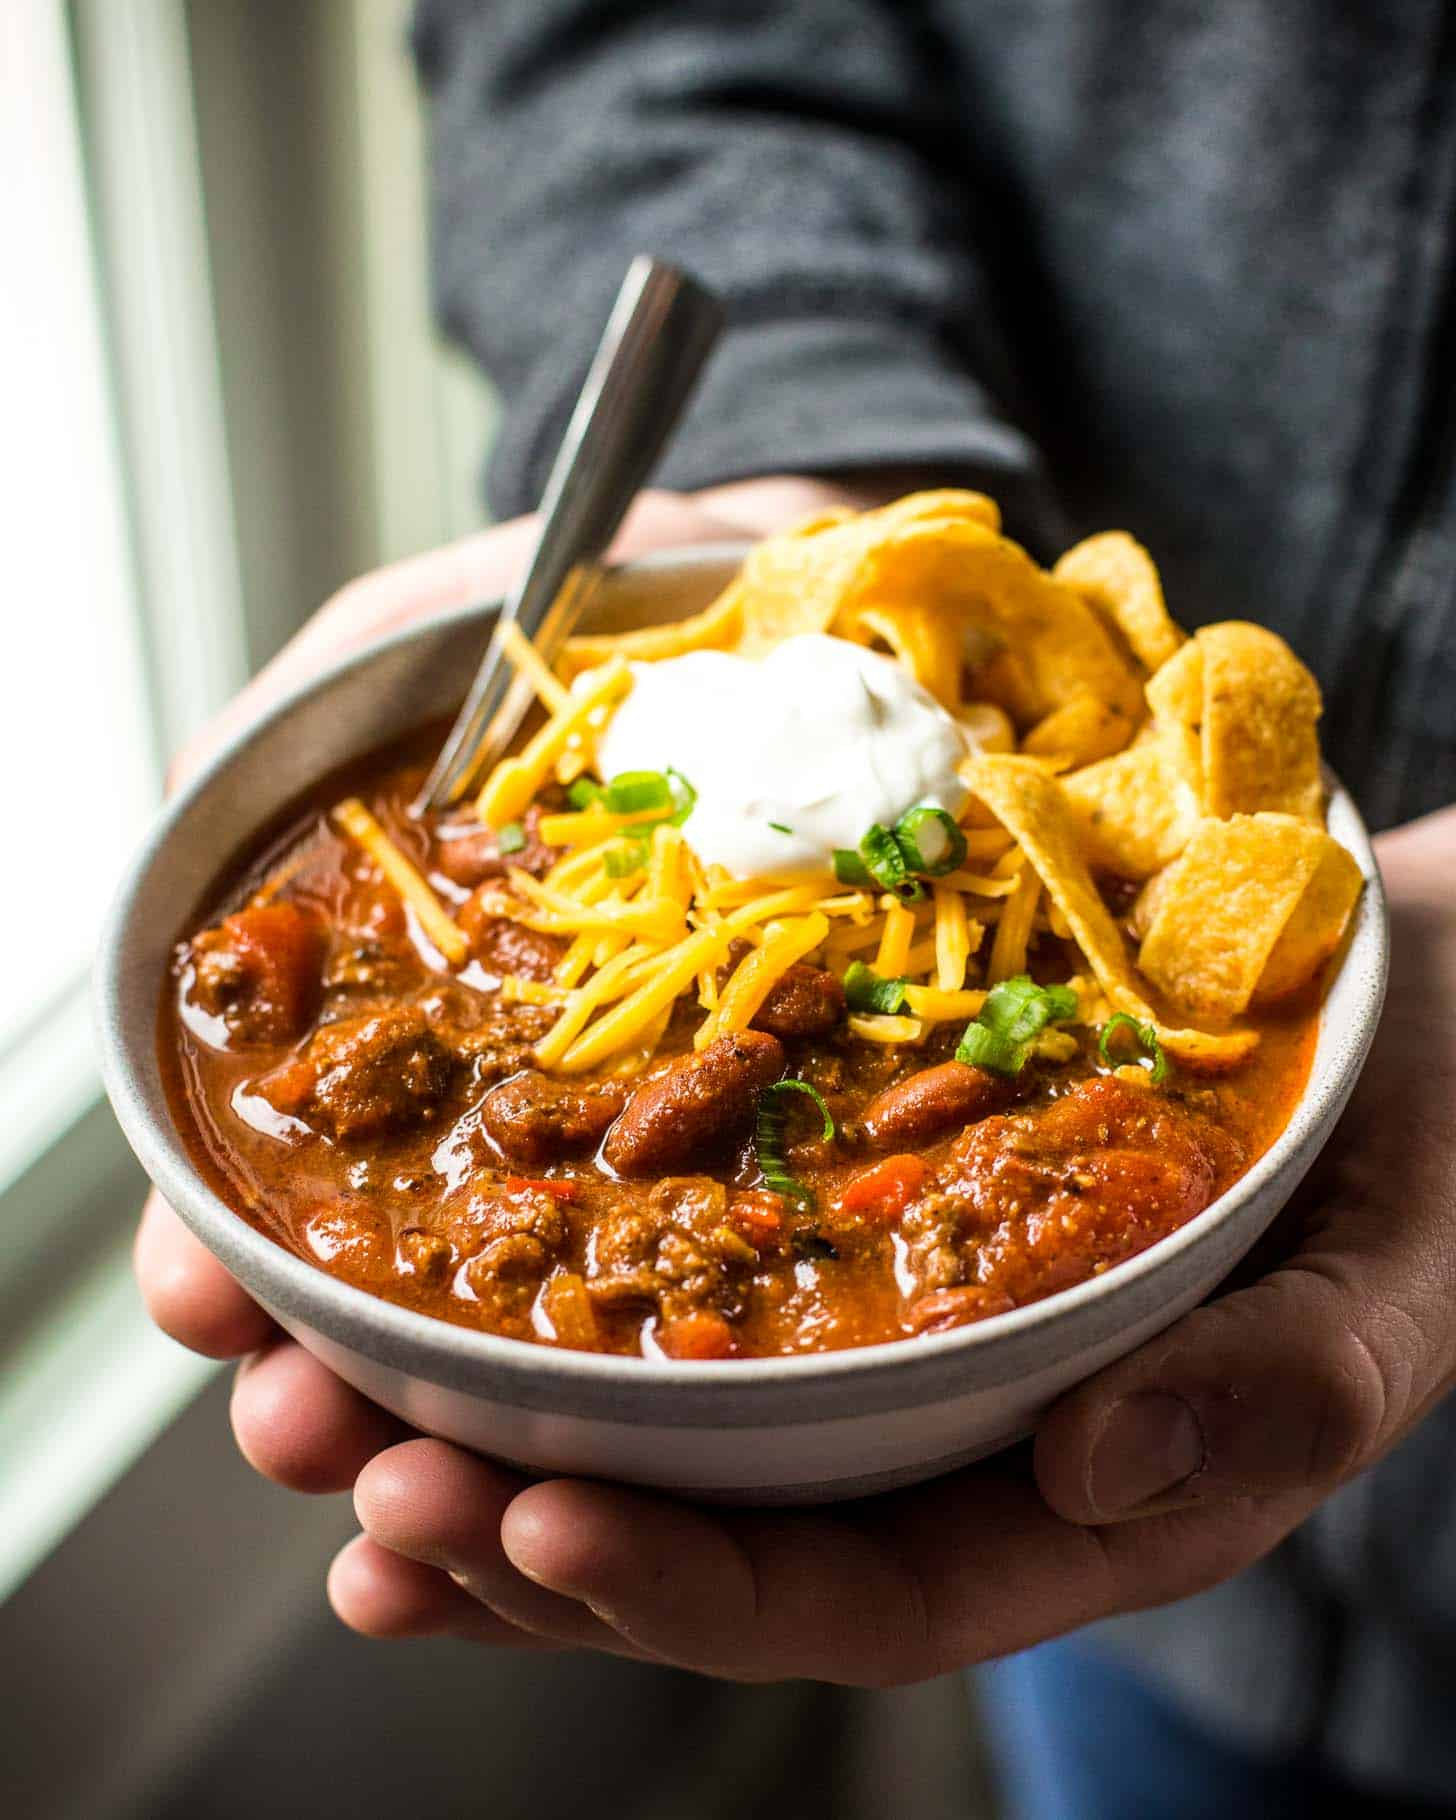 a bowl of Chili with cheese and sour cream